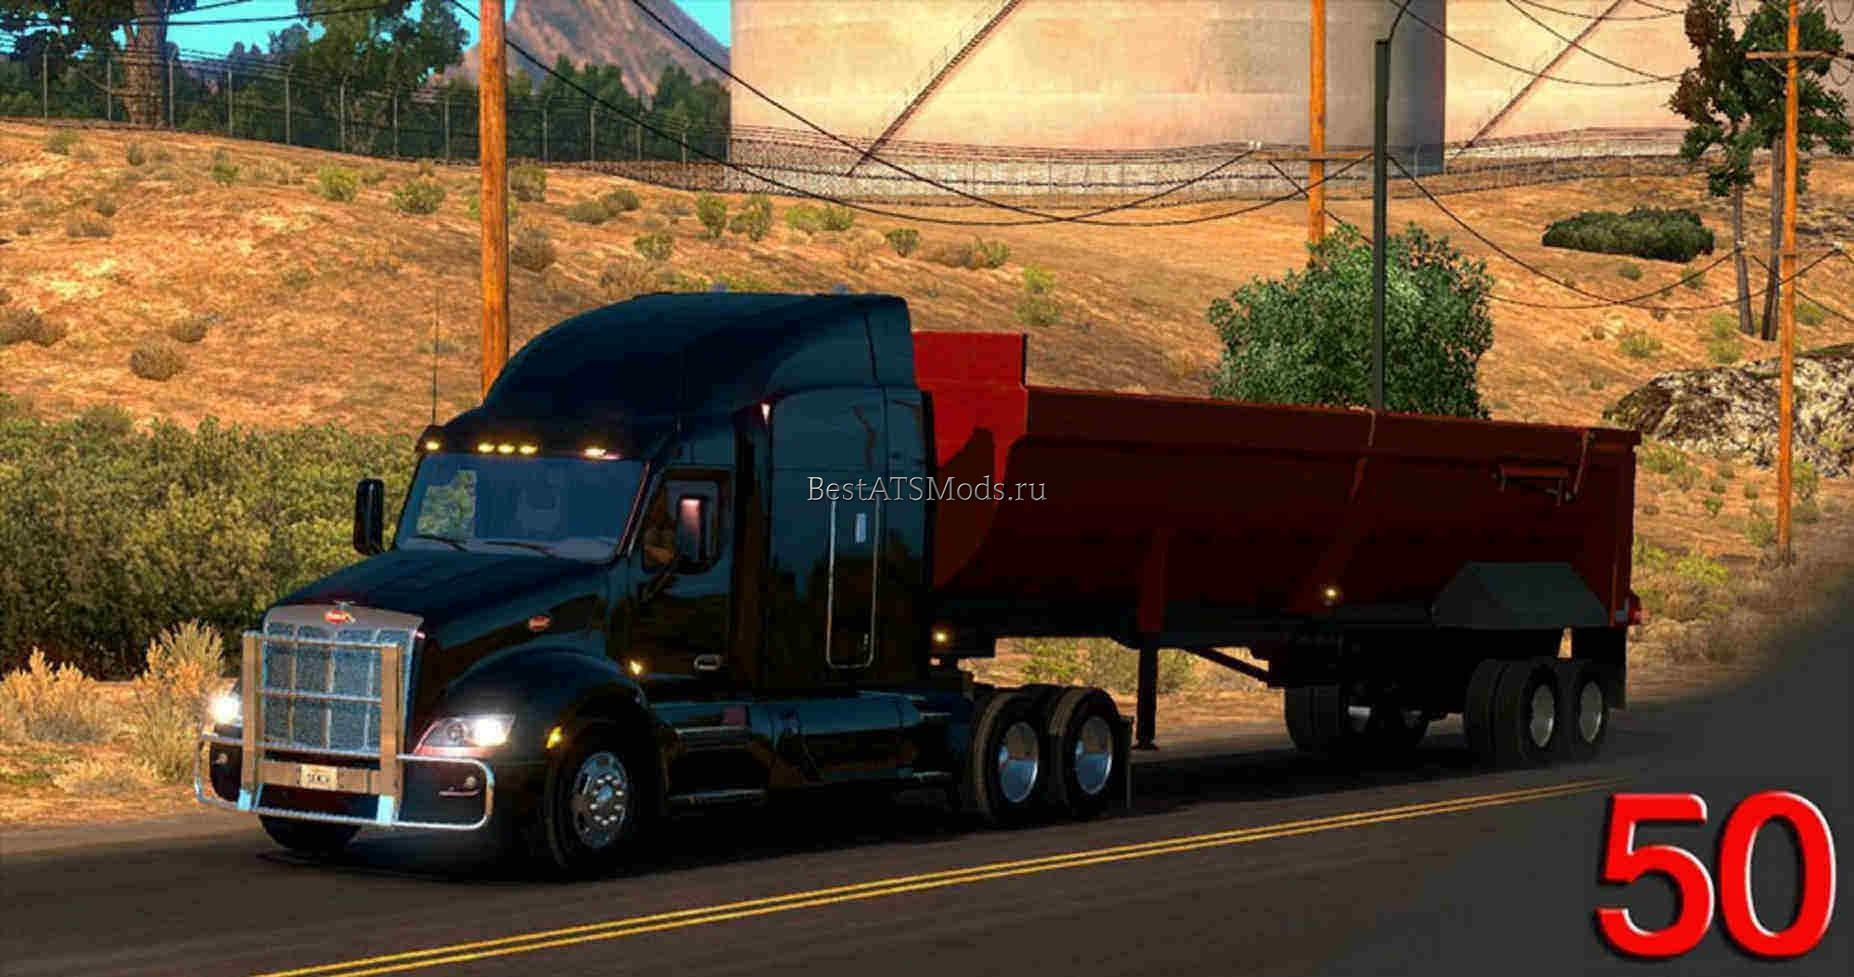 rsz_Мод_прицеп_50_ton_dorse_trailer_for_american_truck_simulator